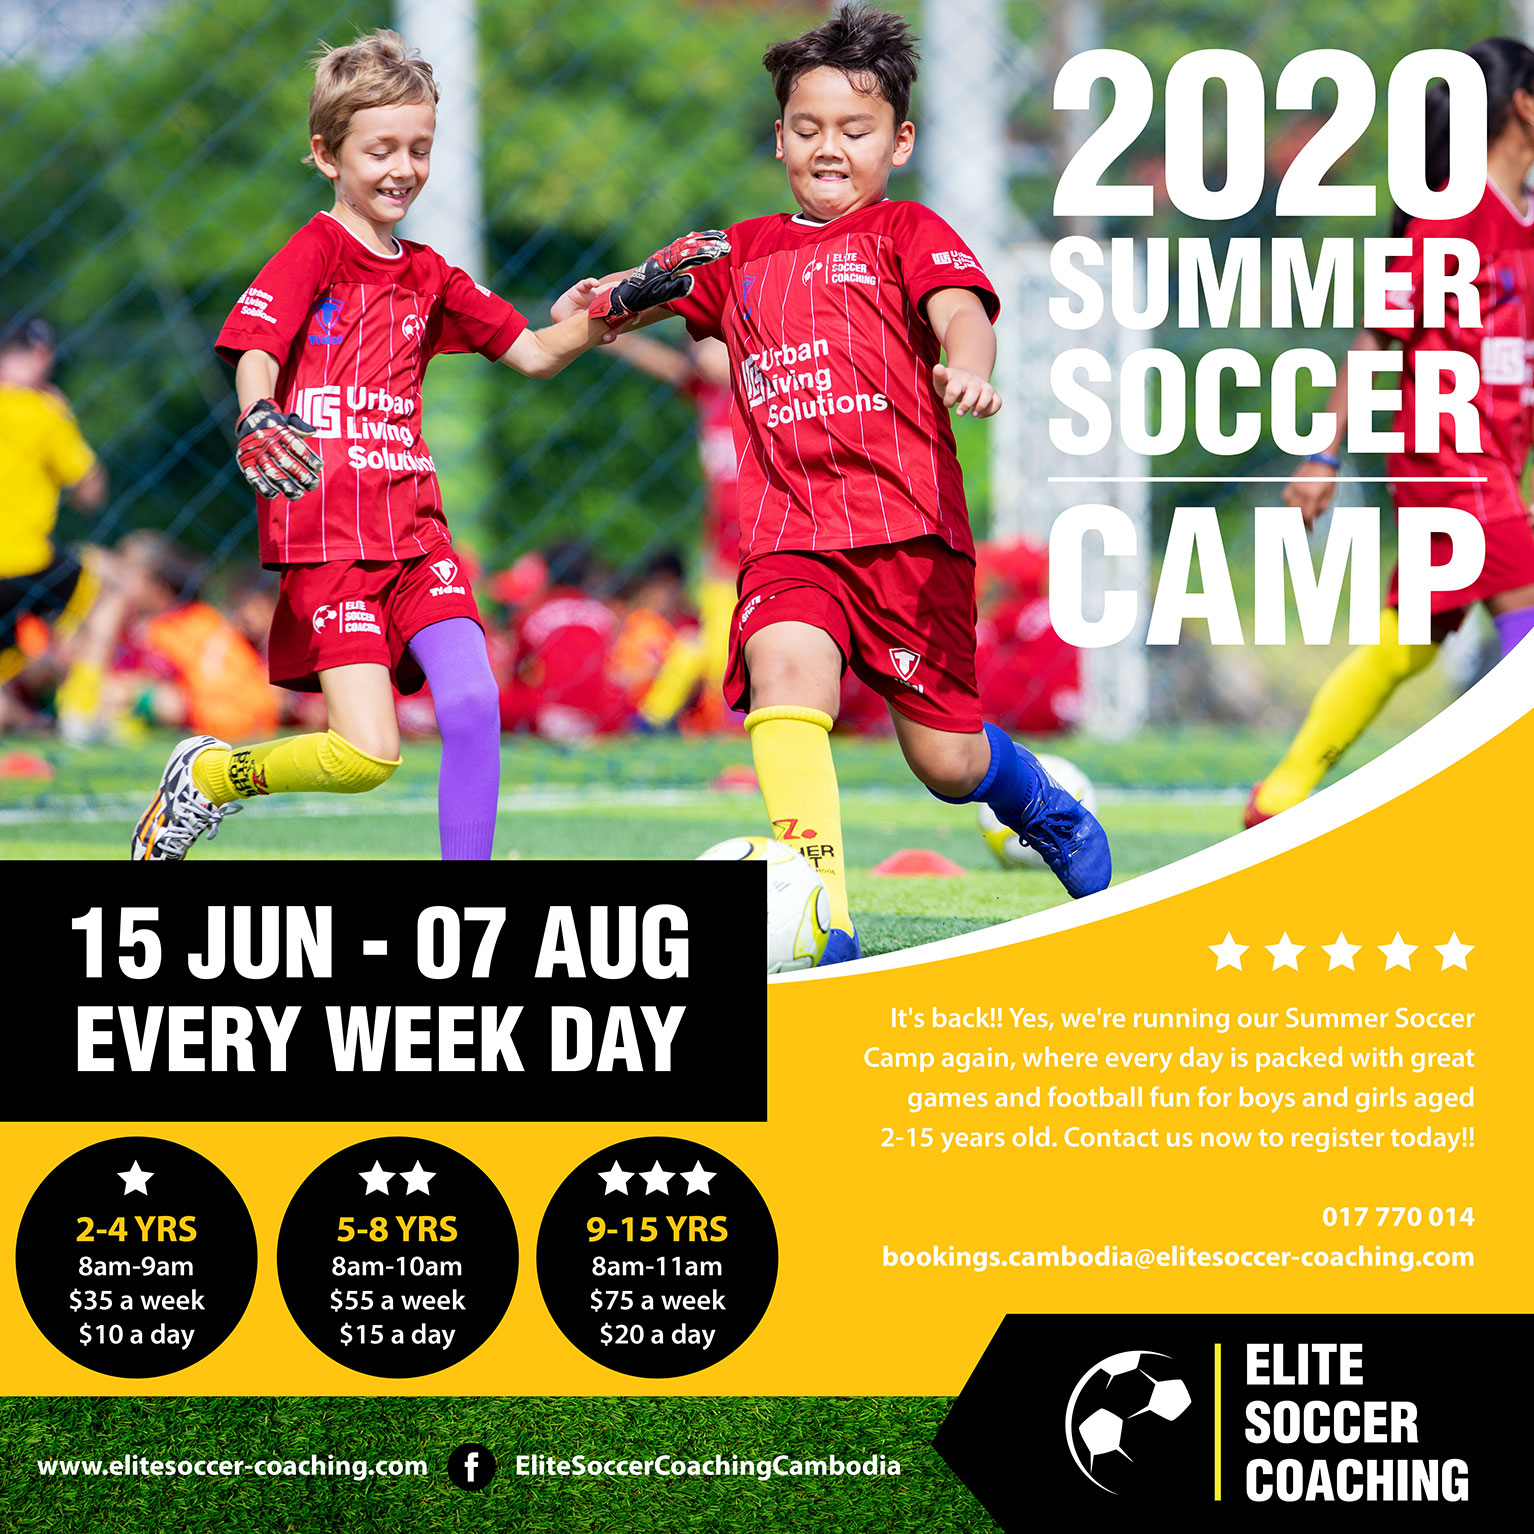 elite-soccer-coaching-football-school-cambodia-holiday-courses-summer-camp